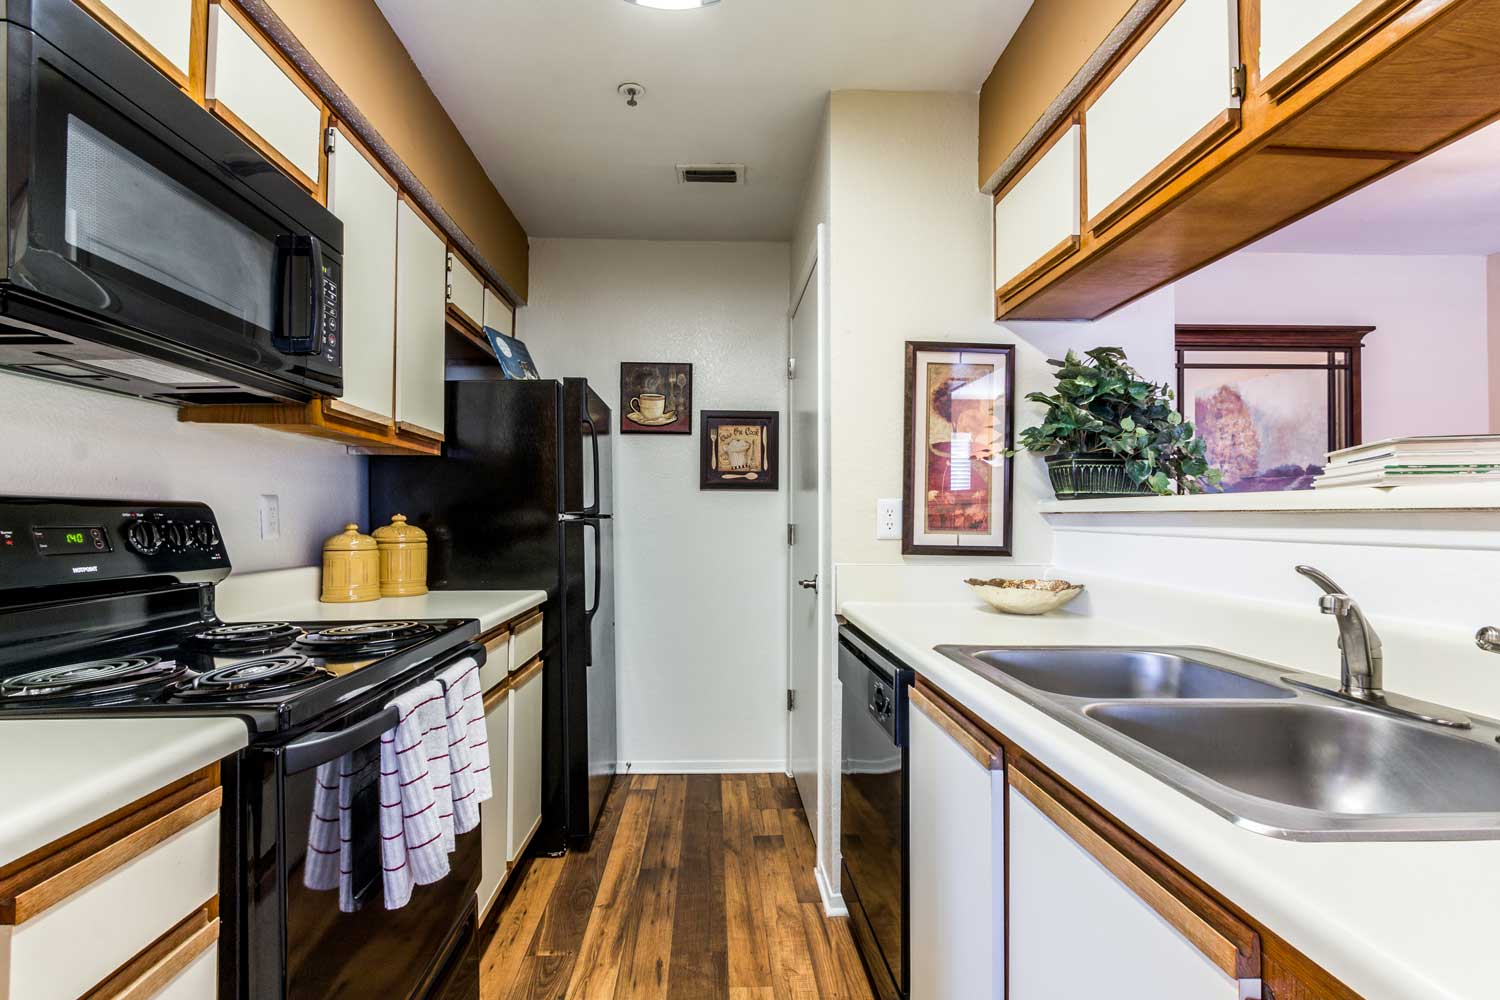 Galley-Style Kitchenat Forest Hills Apartments in Dallas, TX